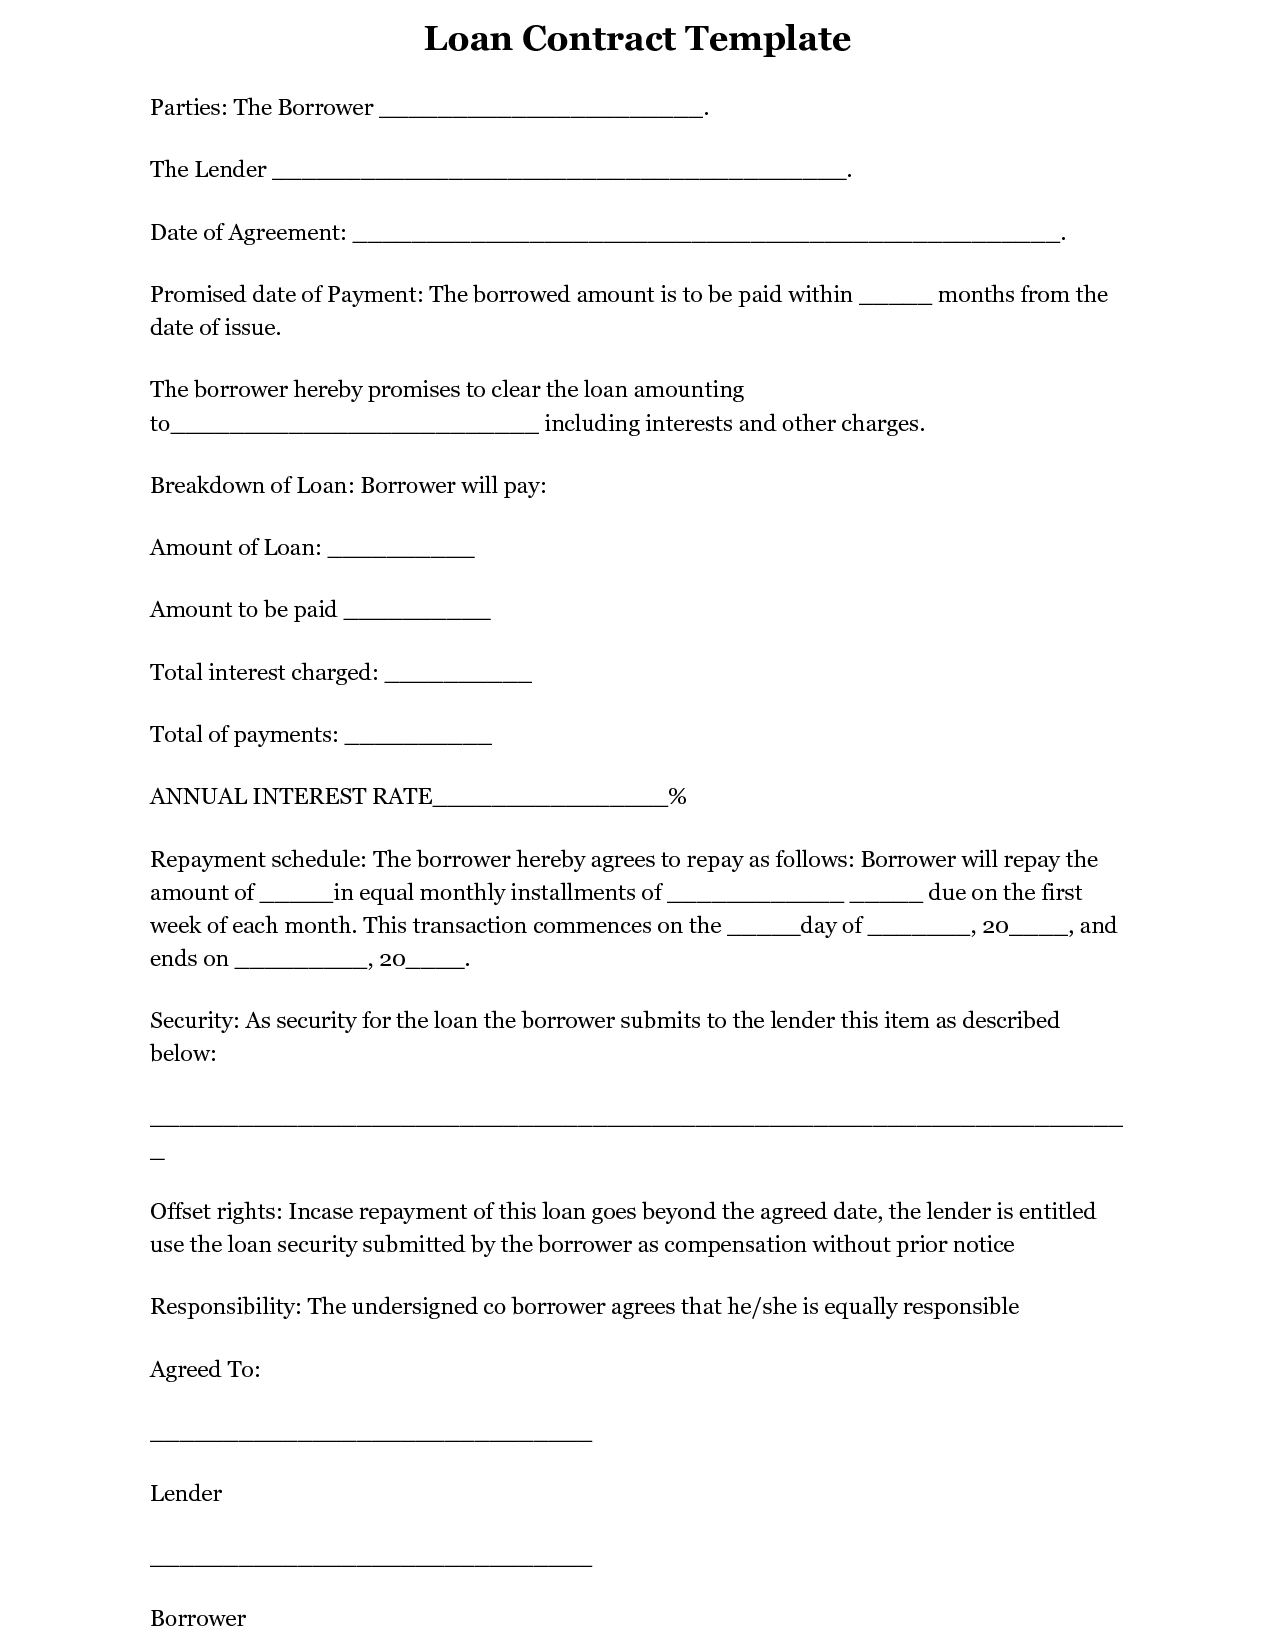 Simple Interest Loan Agreement Template